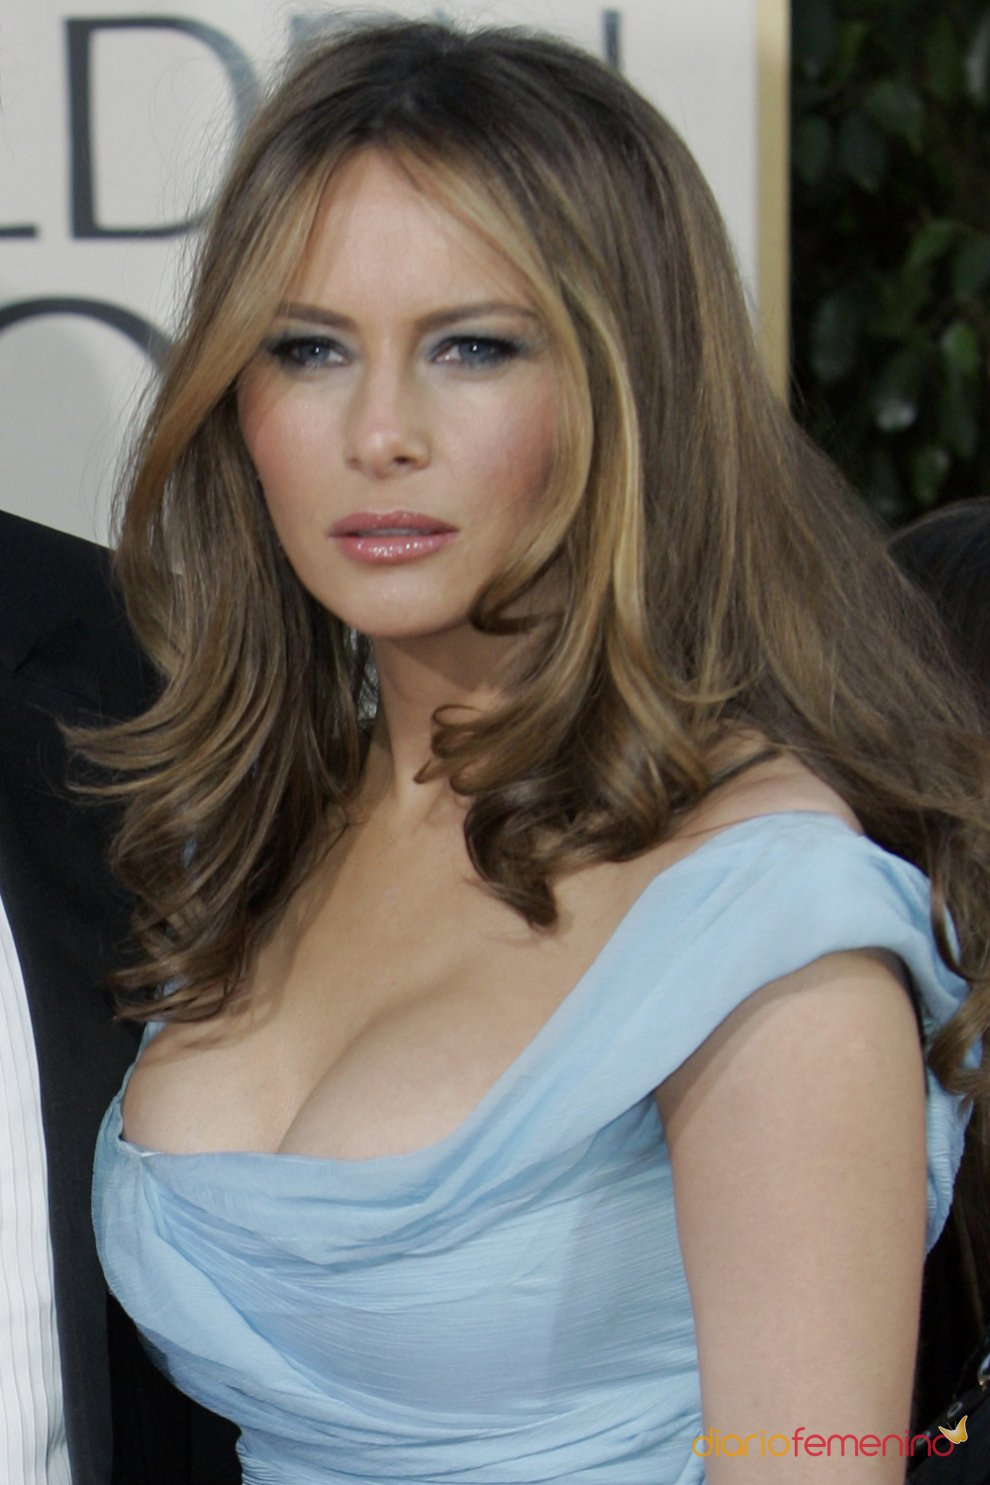 52 Hot Pictures Of Melania Trump Will Make Your Life Great -6342